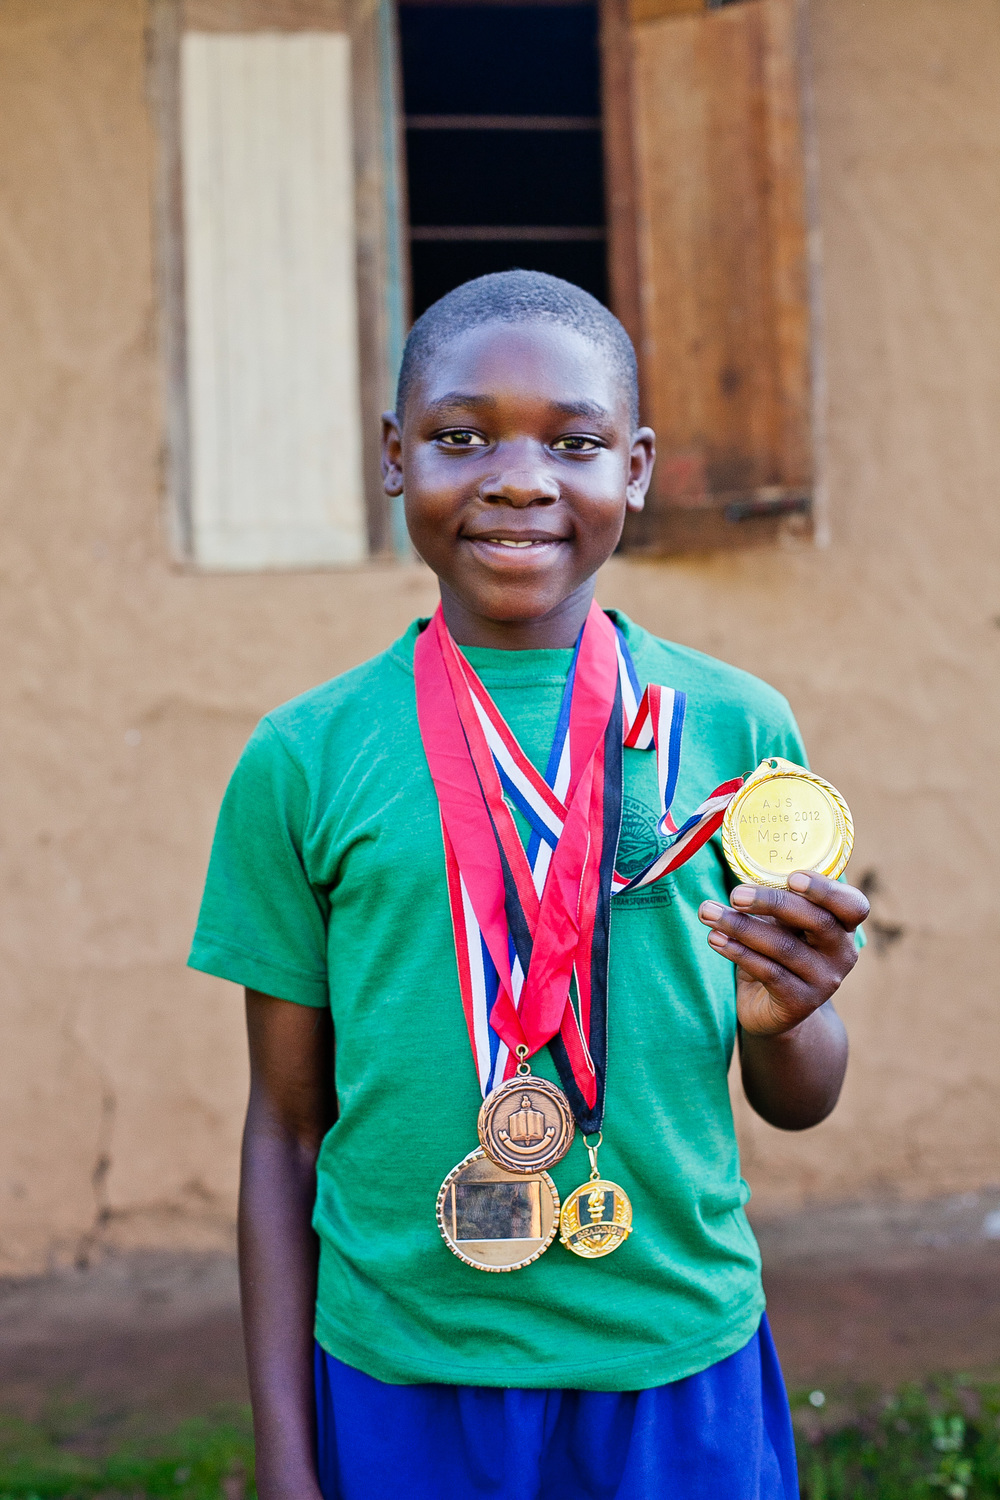 Mercy shows off some of her medals won in track competitions.